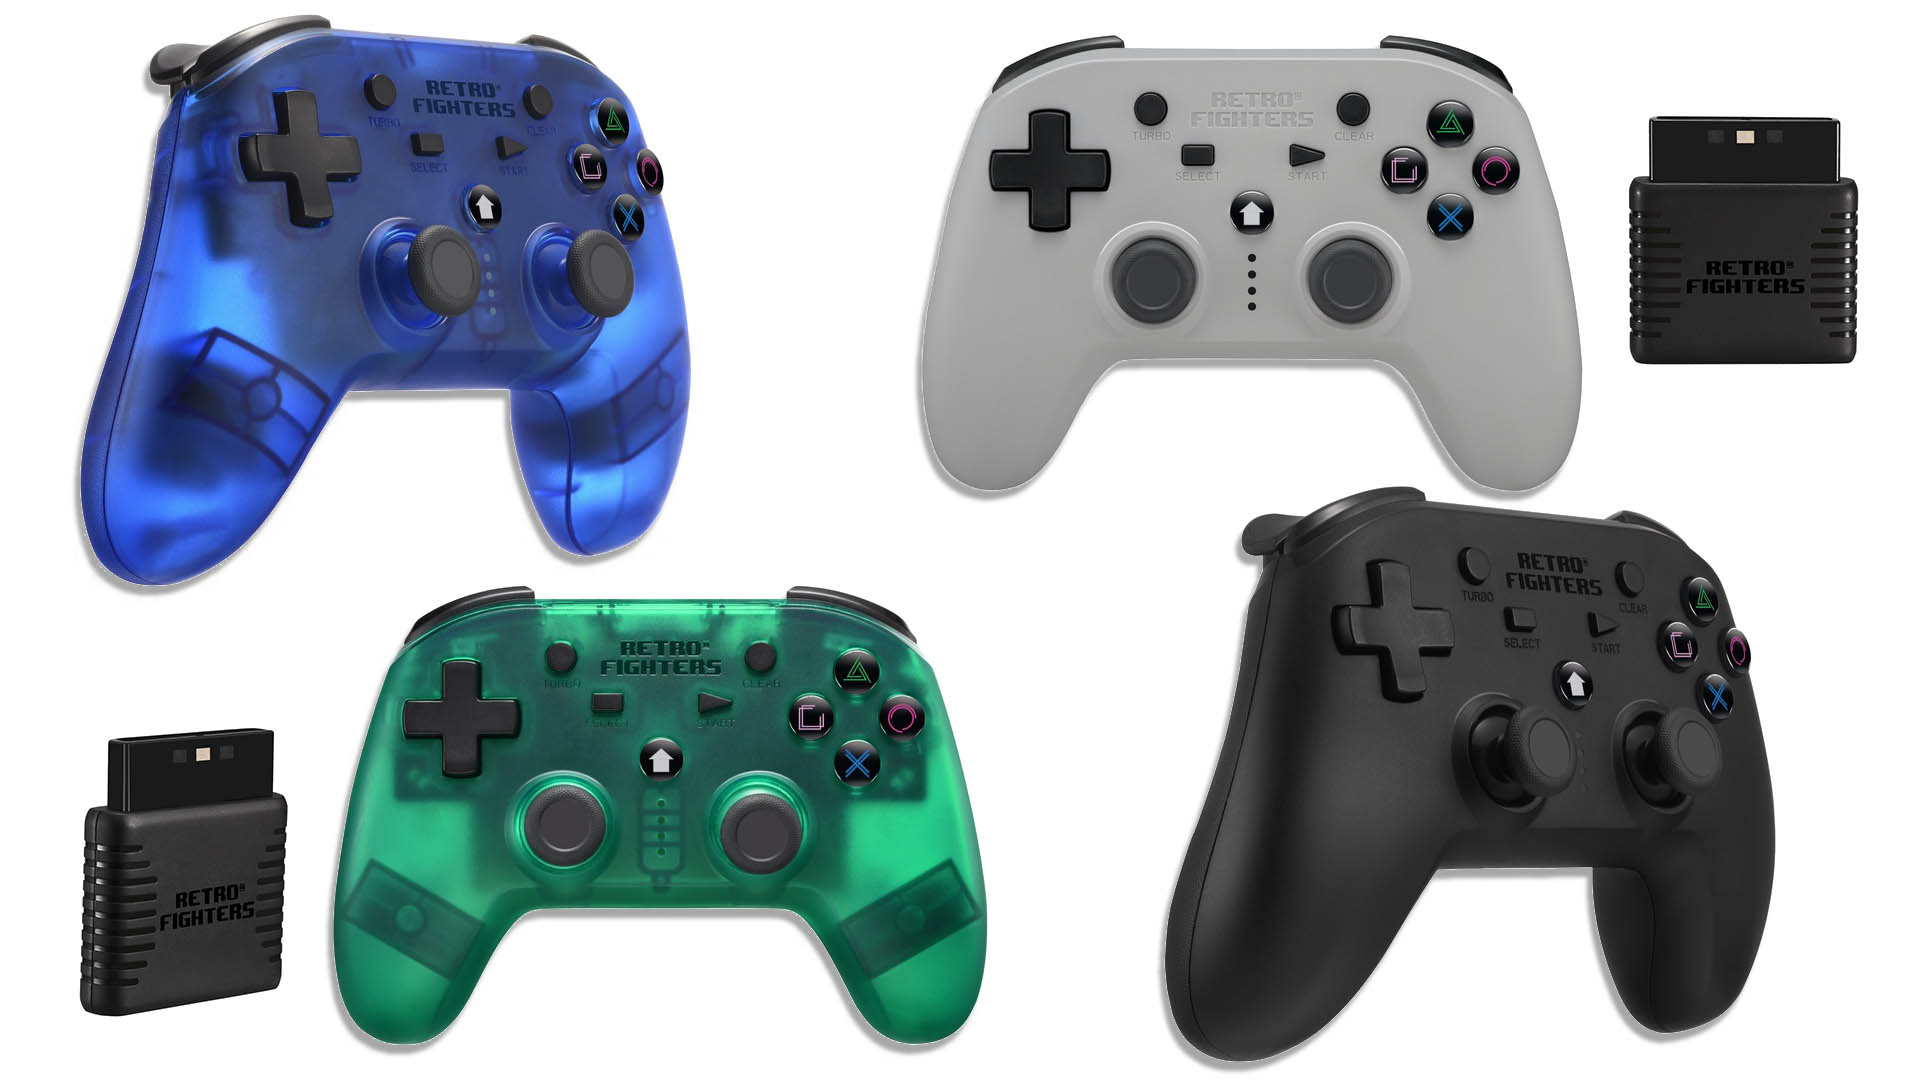 Retro Fighters Wireless PlayStation 1/2 Controller